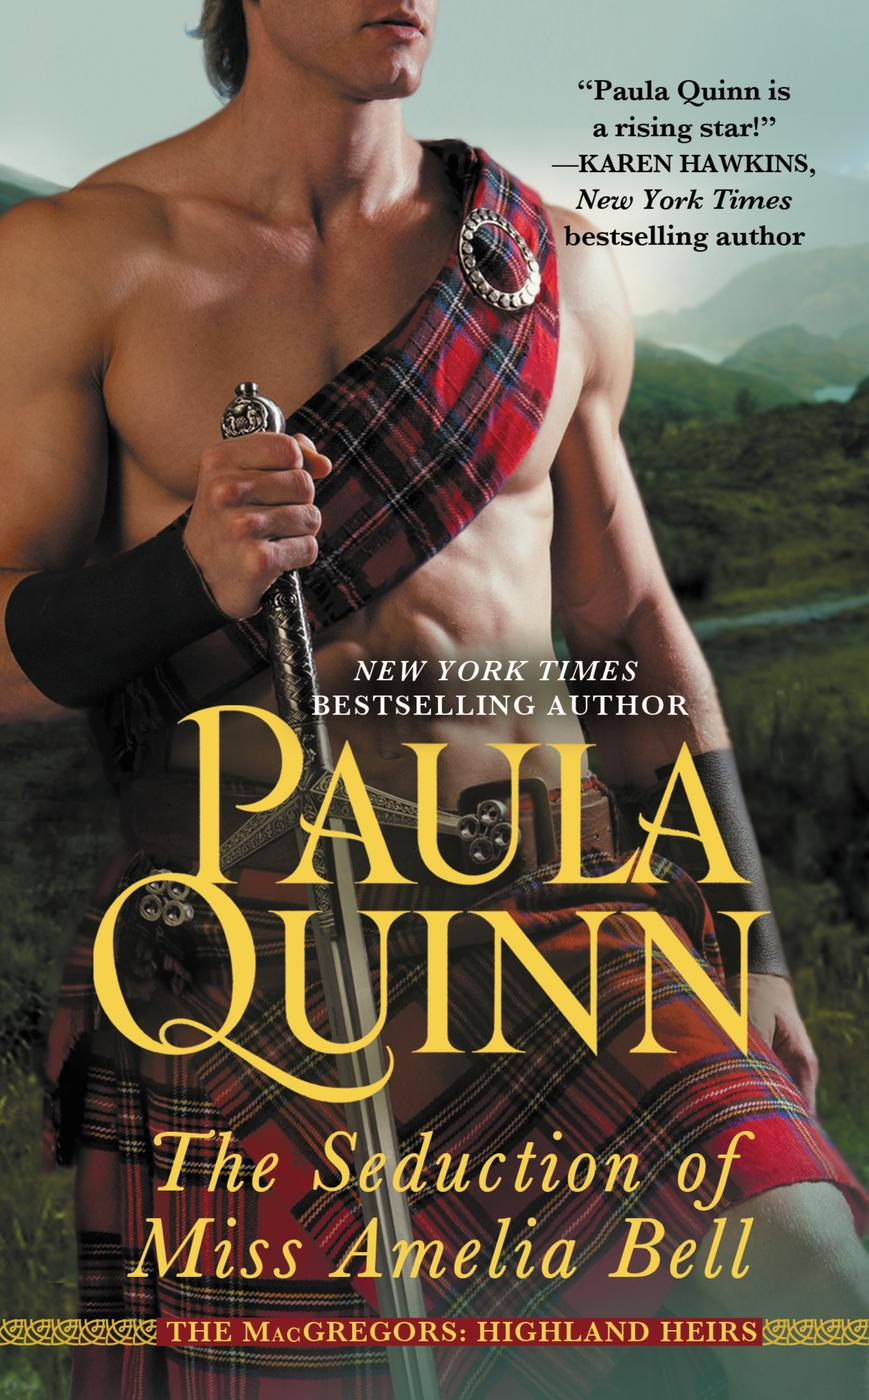 The Seduction of Miss Amelia Bell (2014) by Paula Quinn